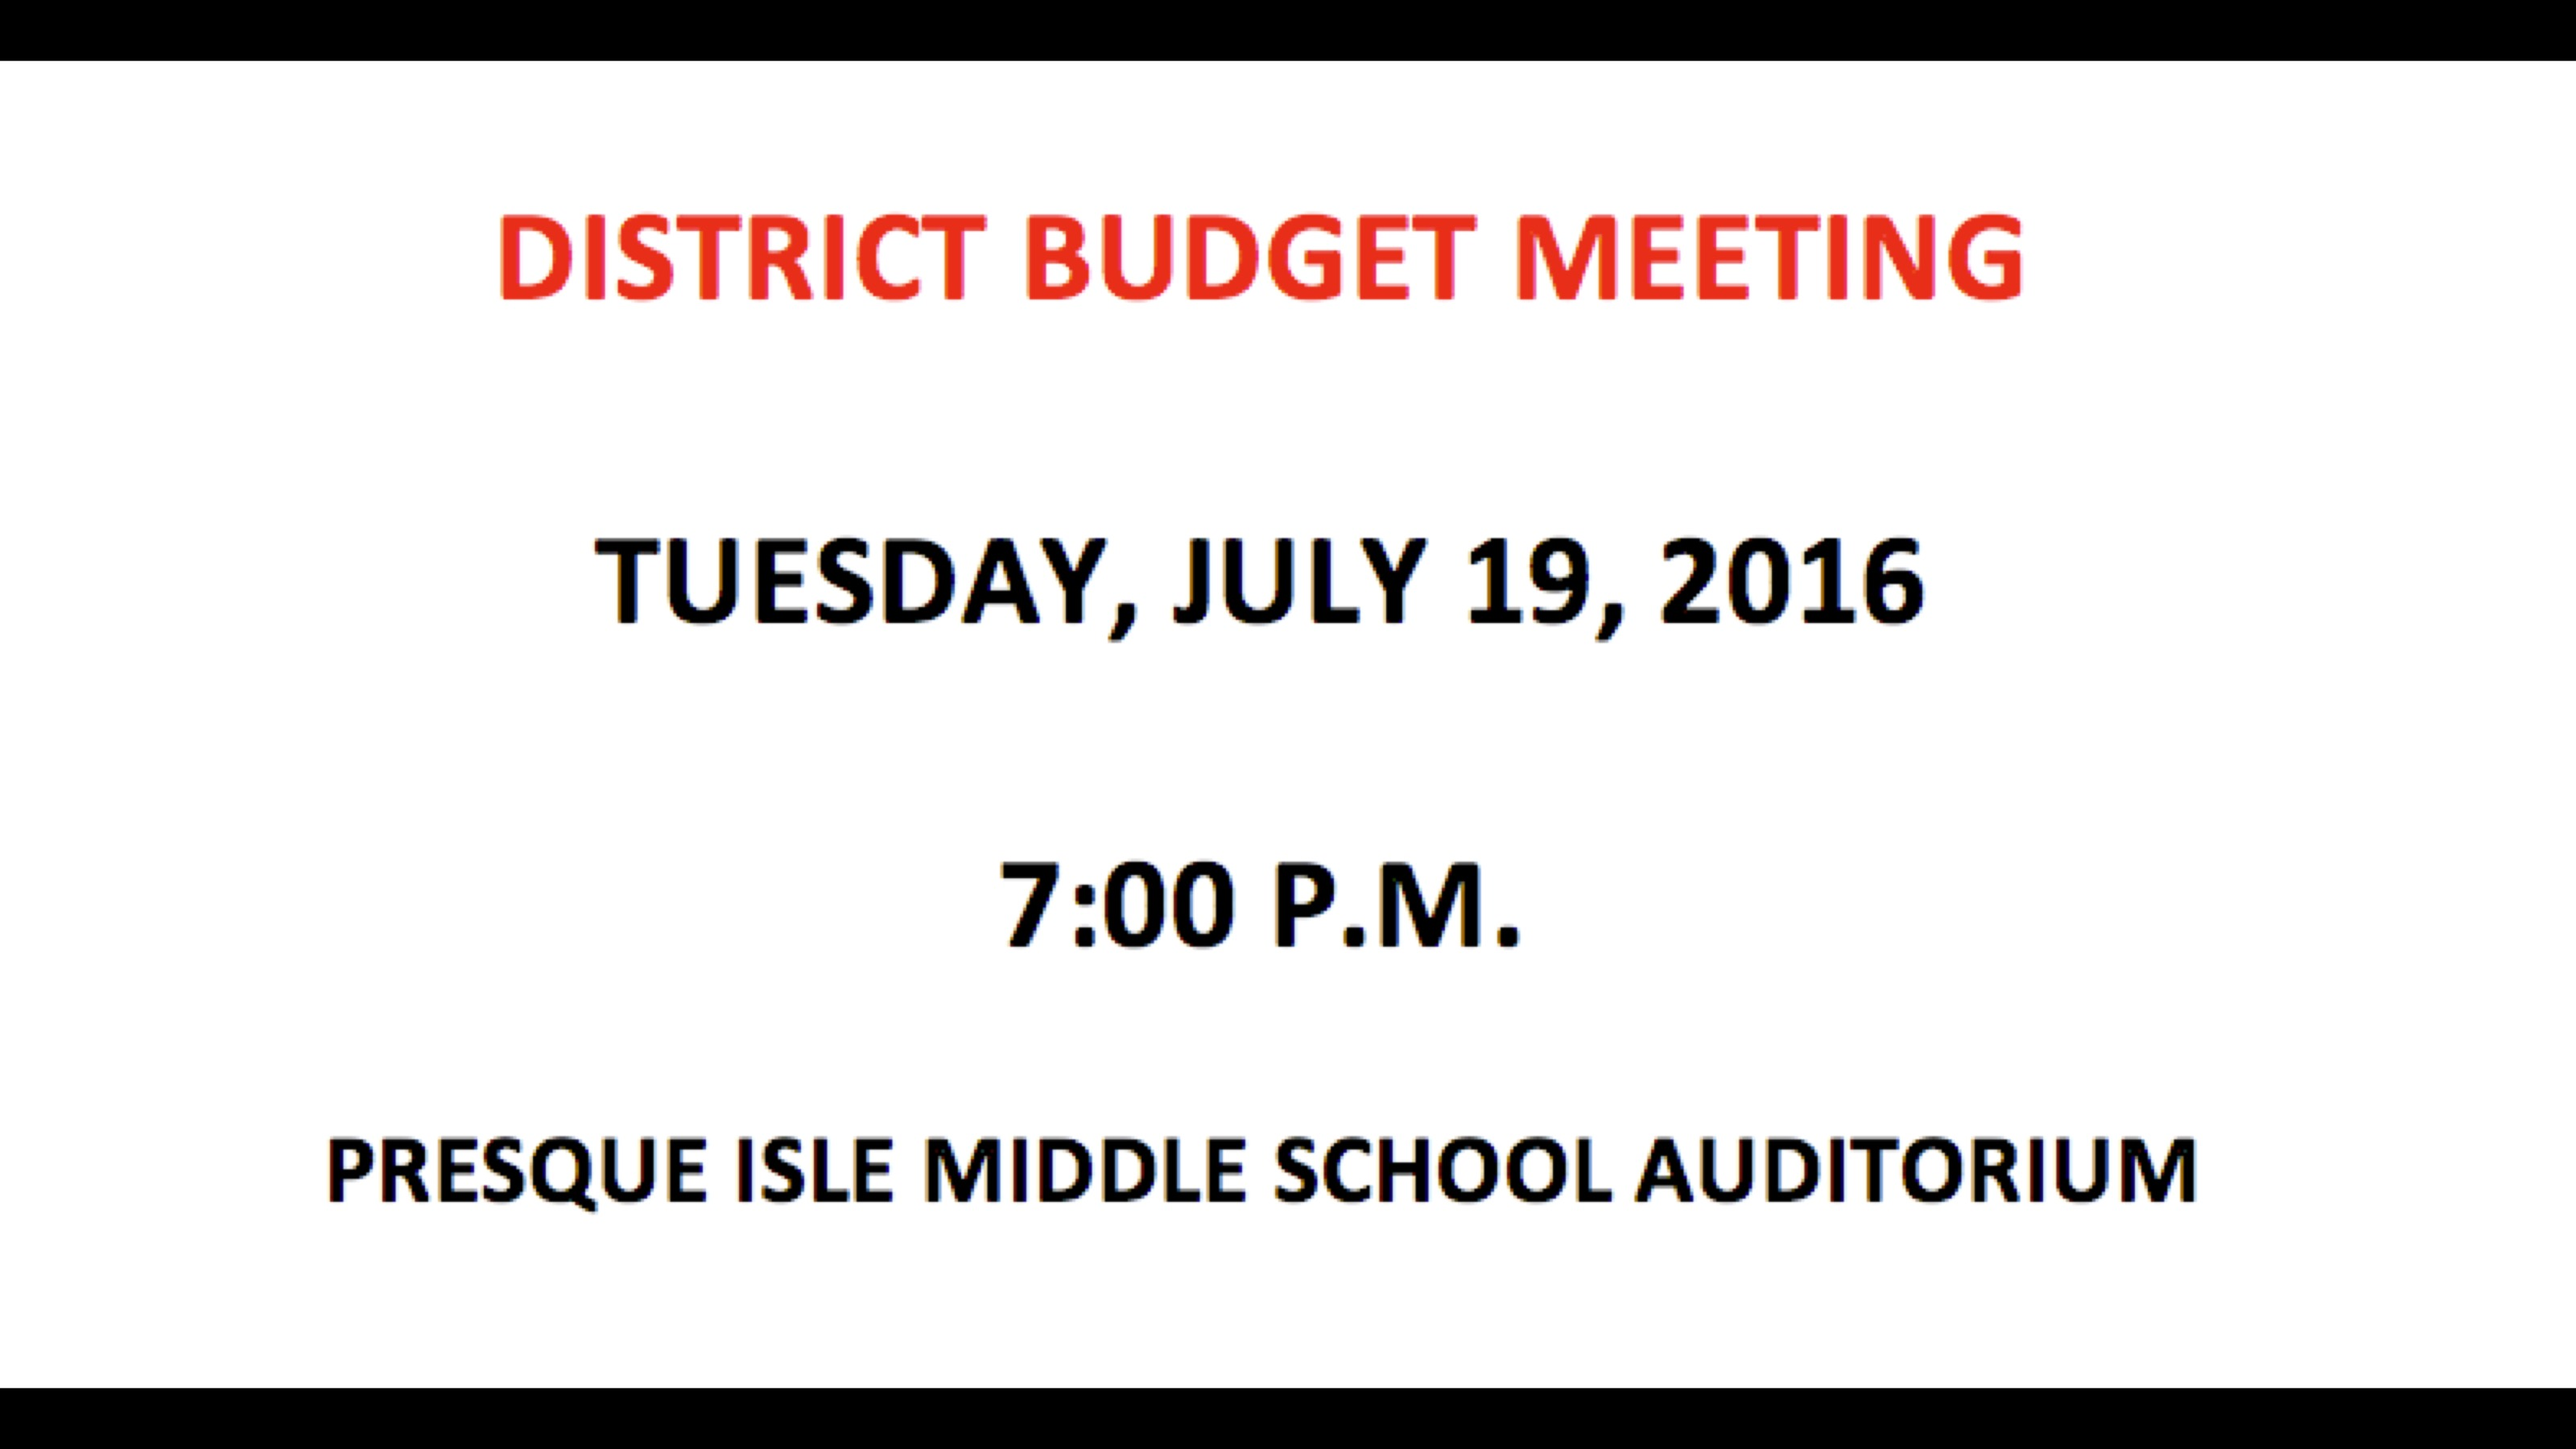 District Budget Meeting